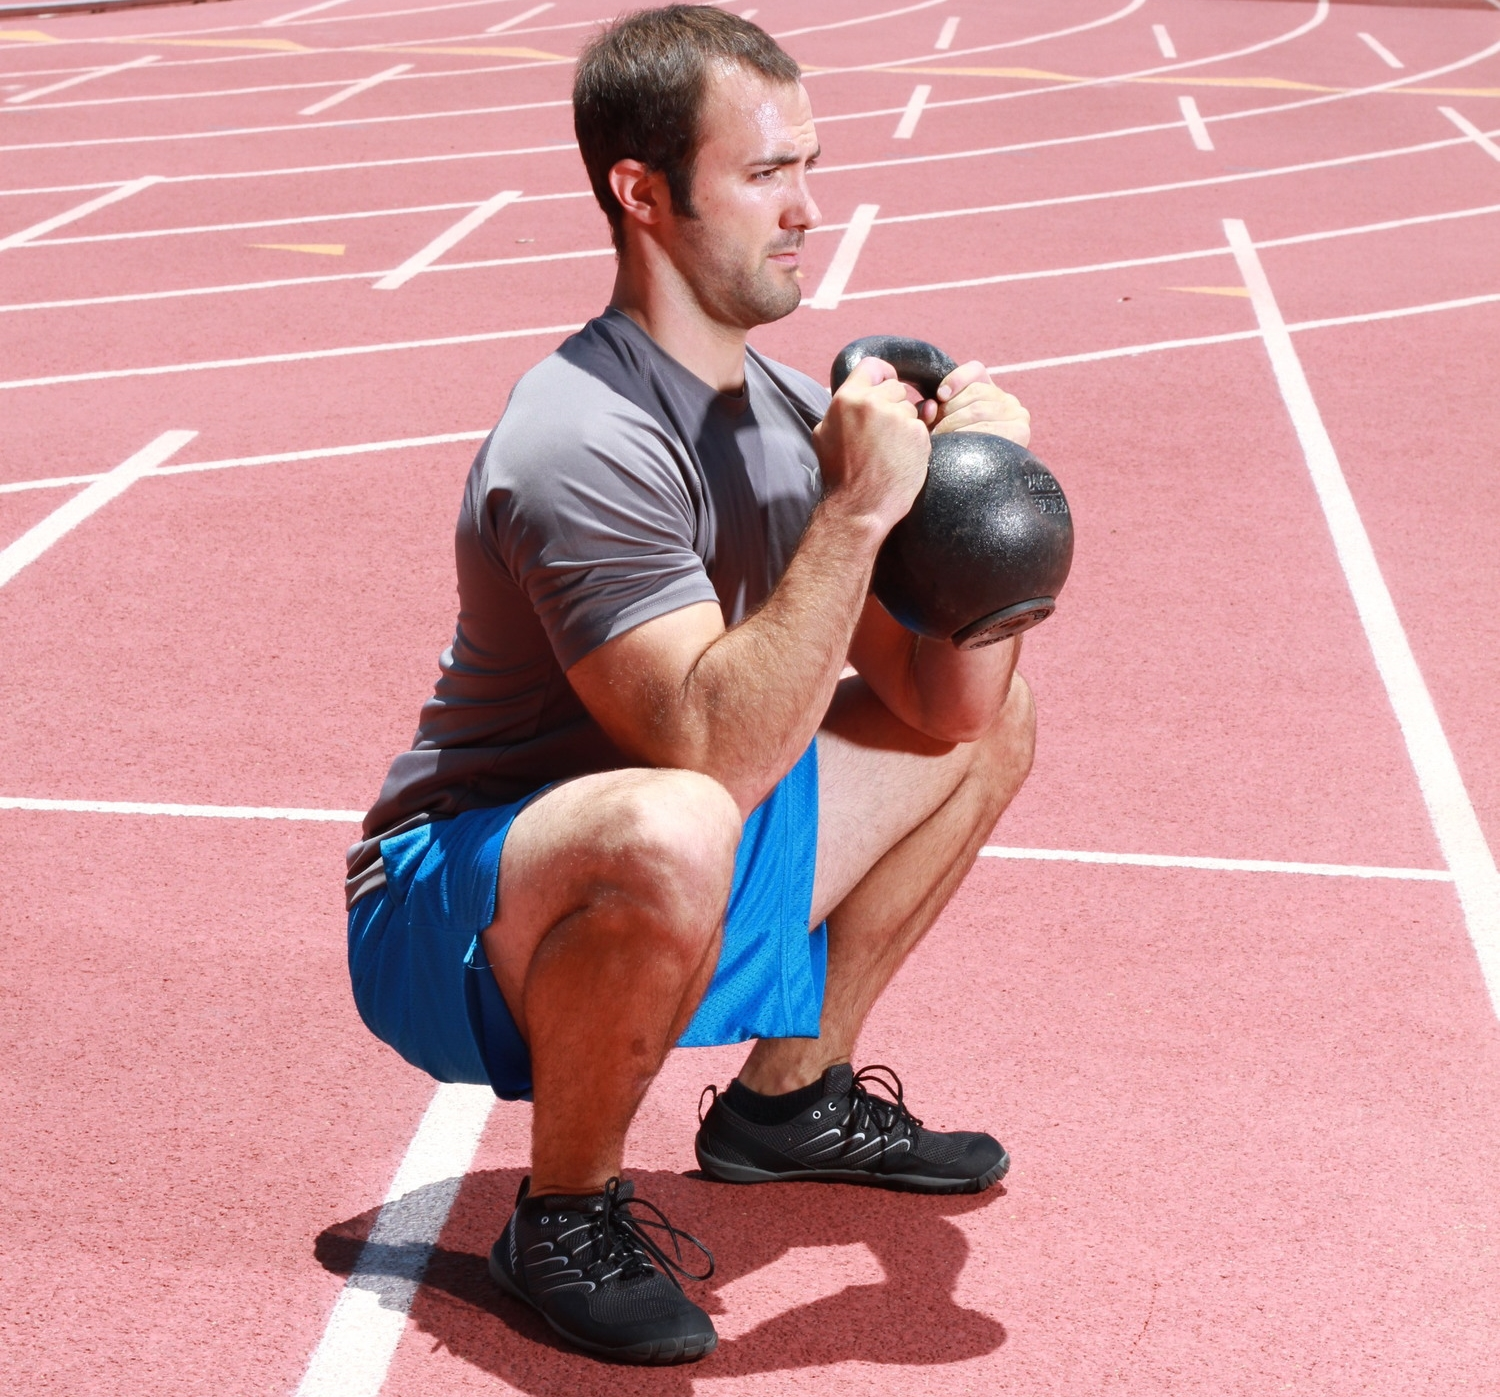 Personal trainer combining kettlebell goblet squats with a track workout in San Diego, CA. #deepsquatshappythoughts